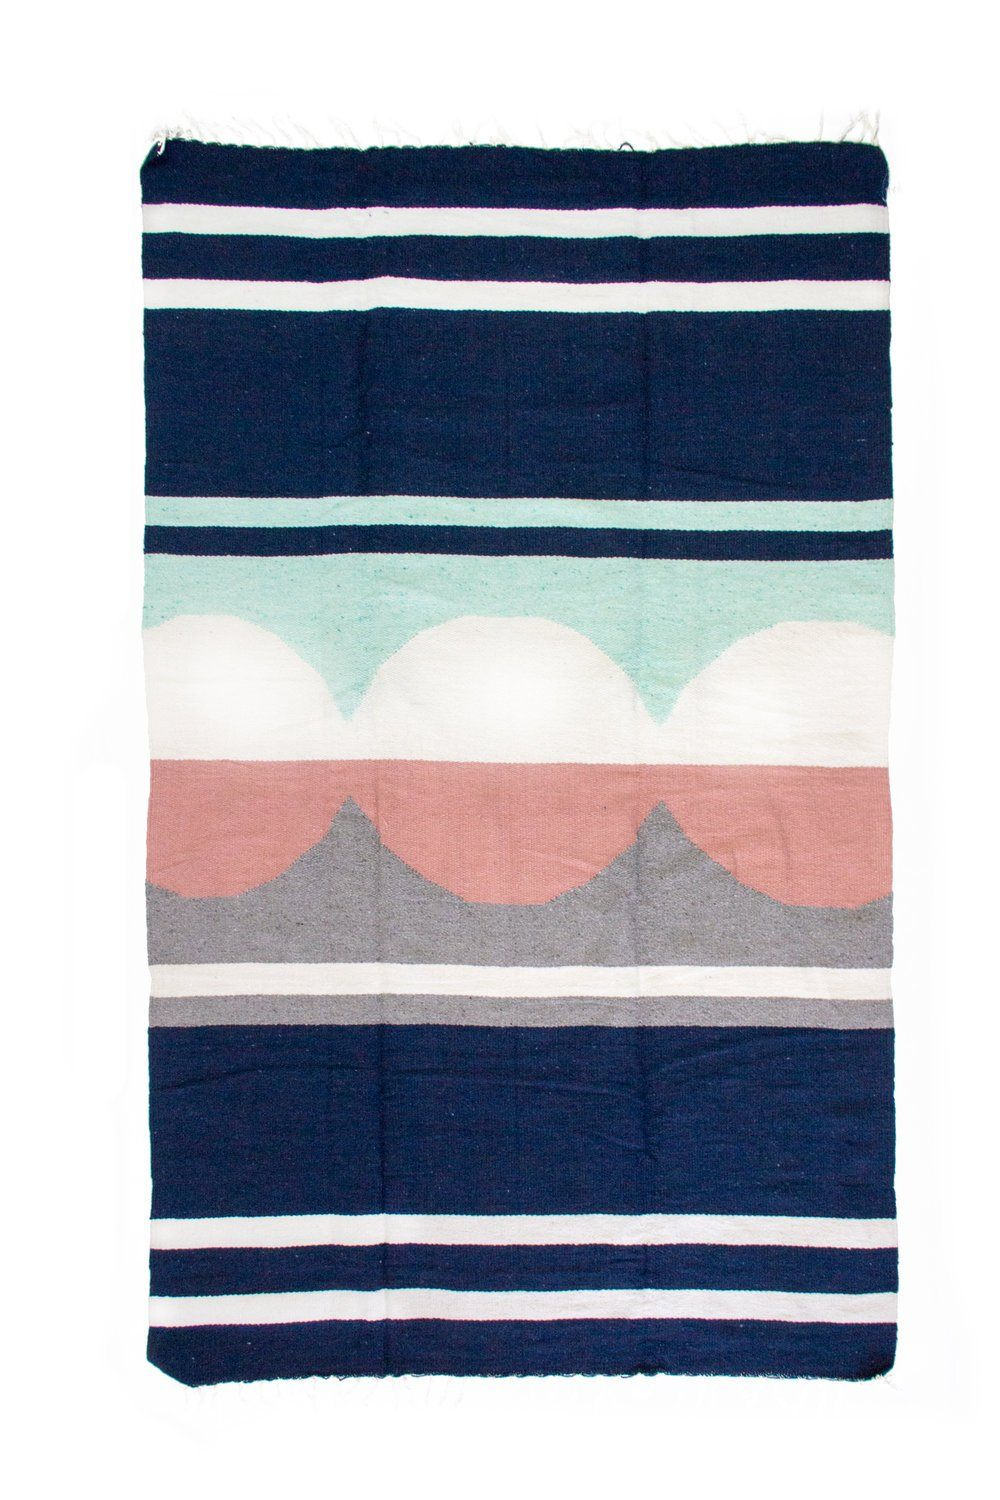 Nipomo Luna Collection - Higo Blanket Nipomo